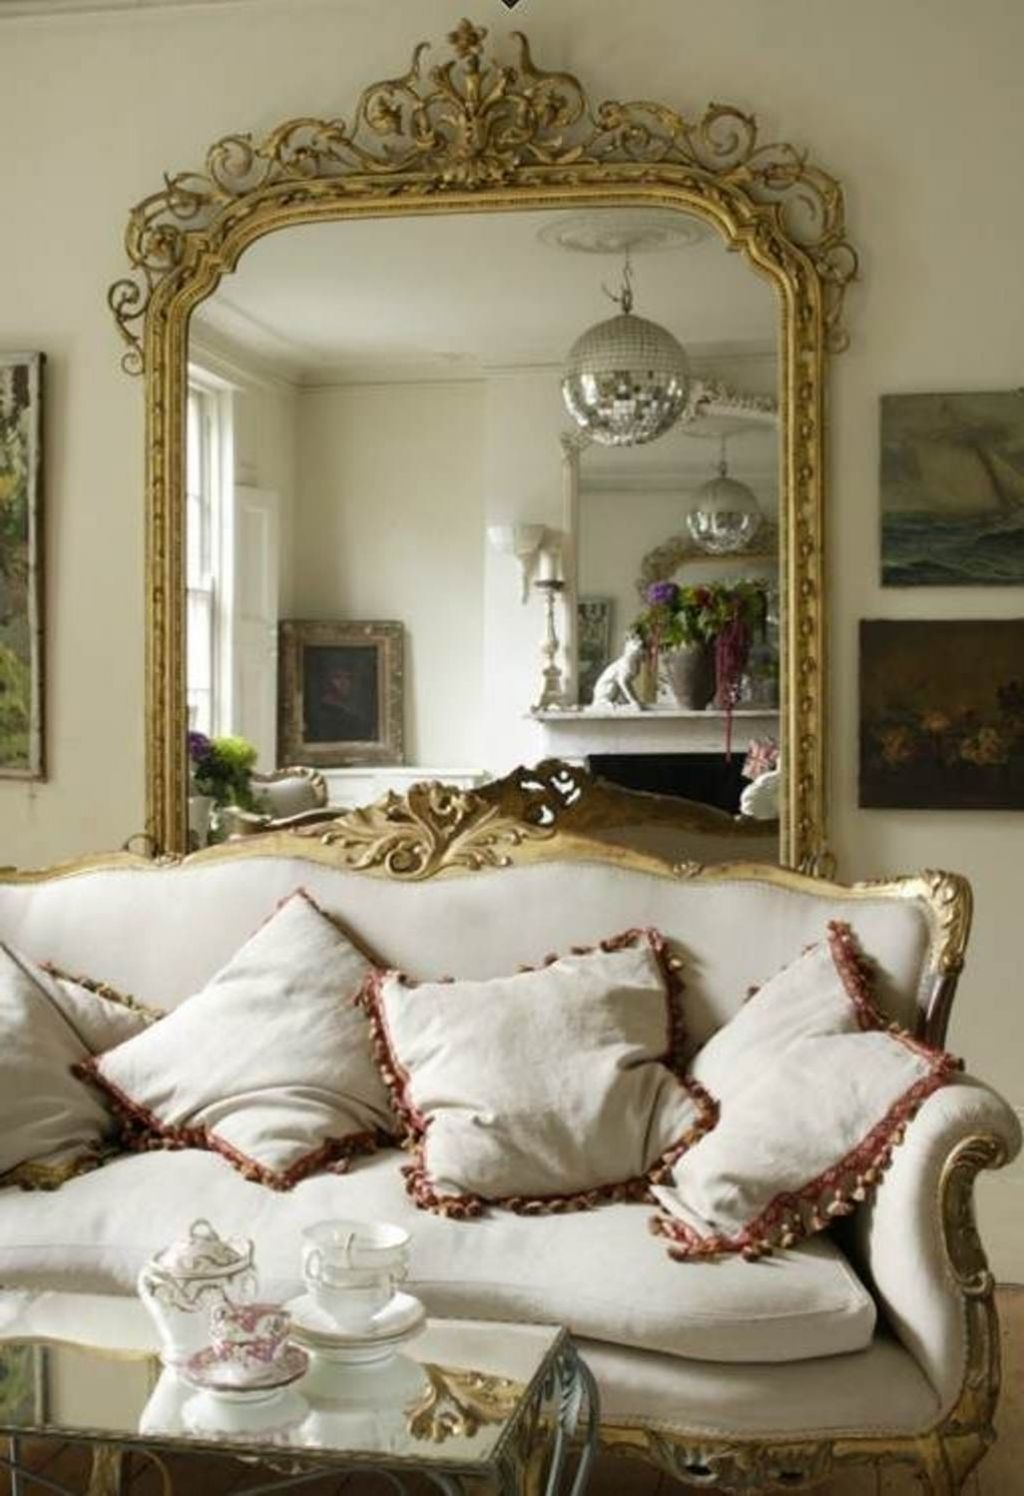 Artistic Framed Mirror'S For The Living Room